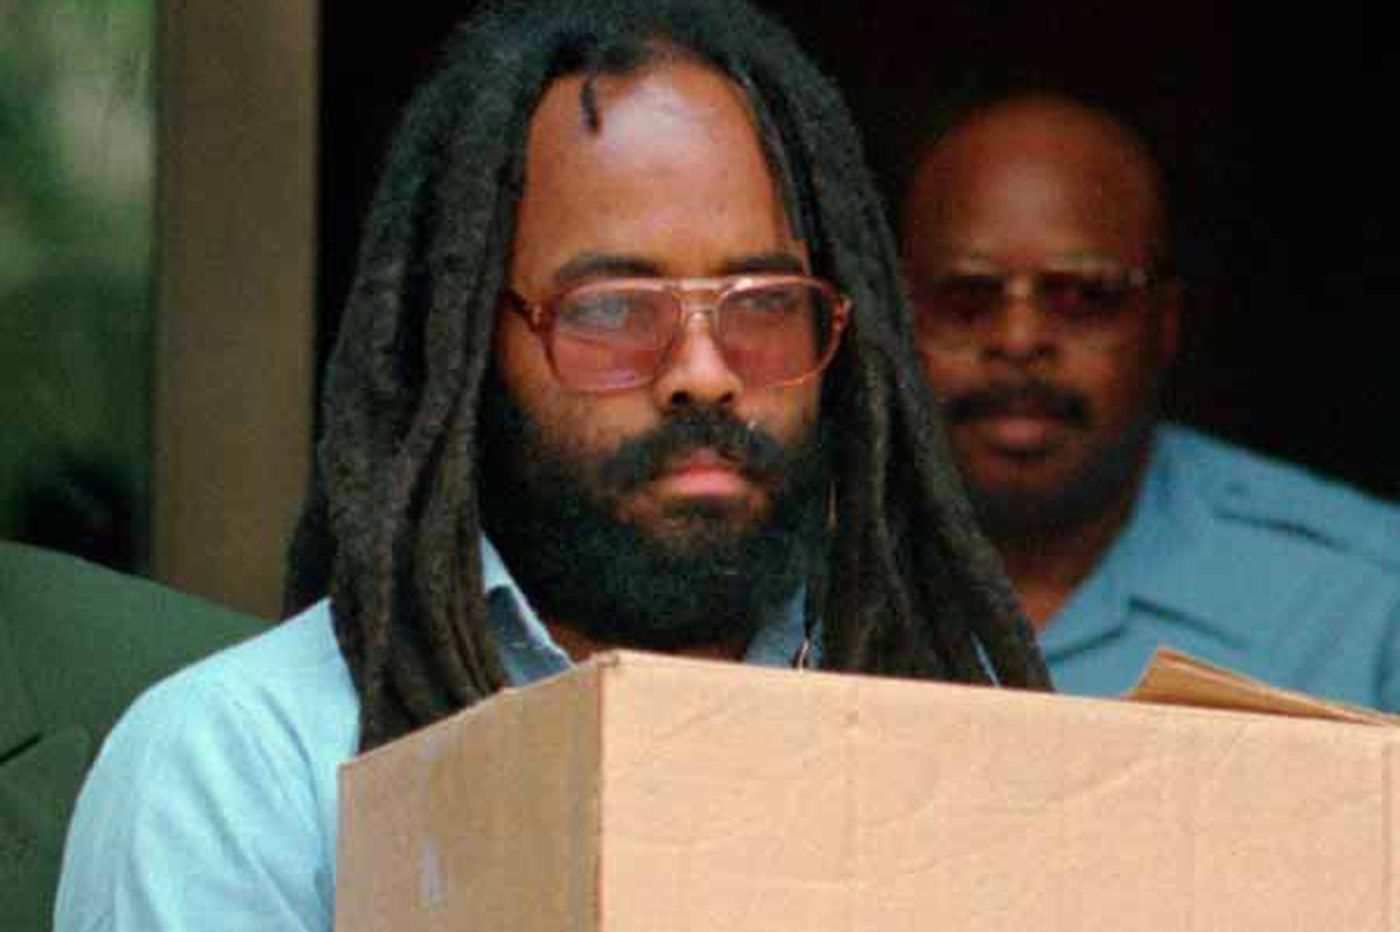 Philly D.A.'s Office finds file boxes in Abu-Jamal case